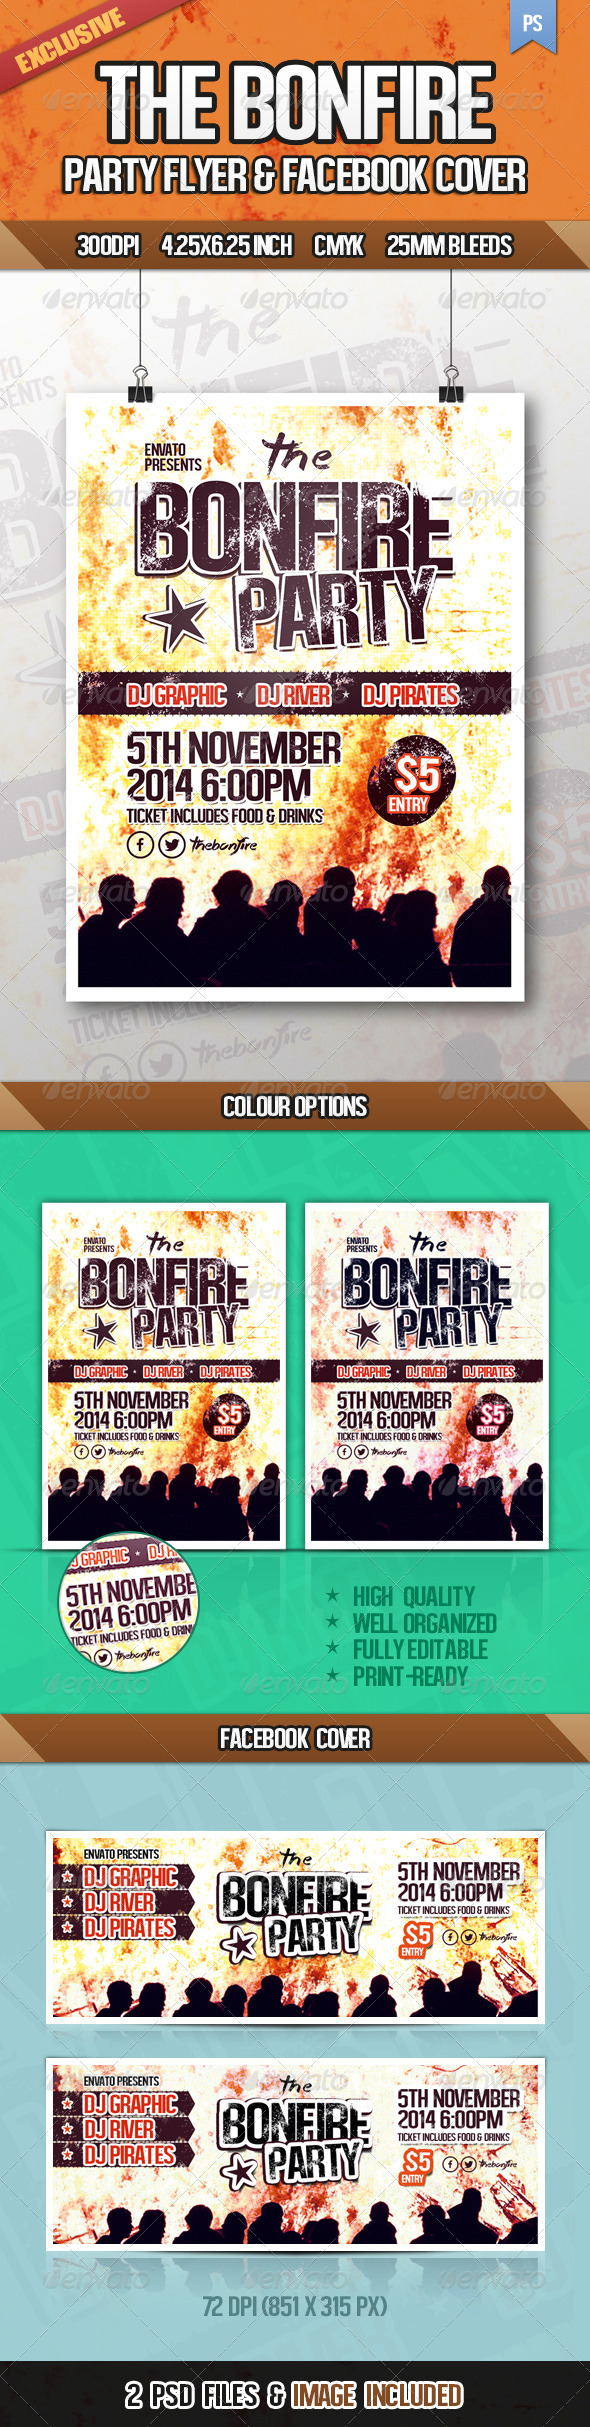 The Bonfire Party Flyer - Events Flyers